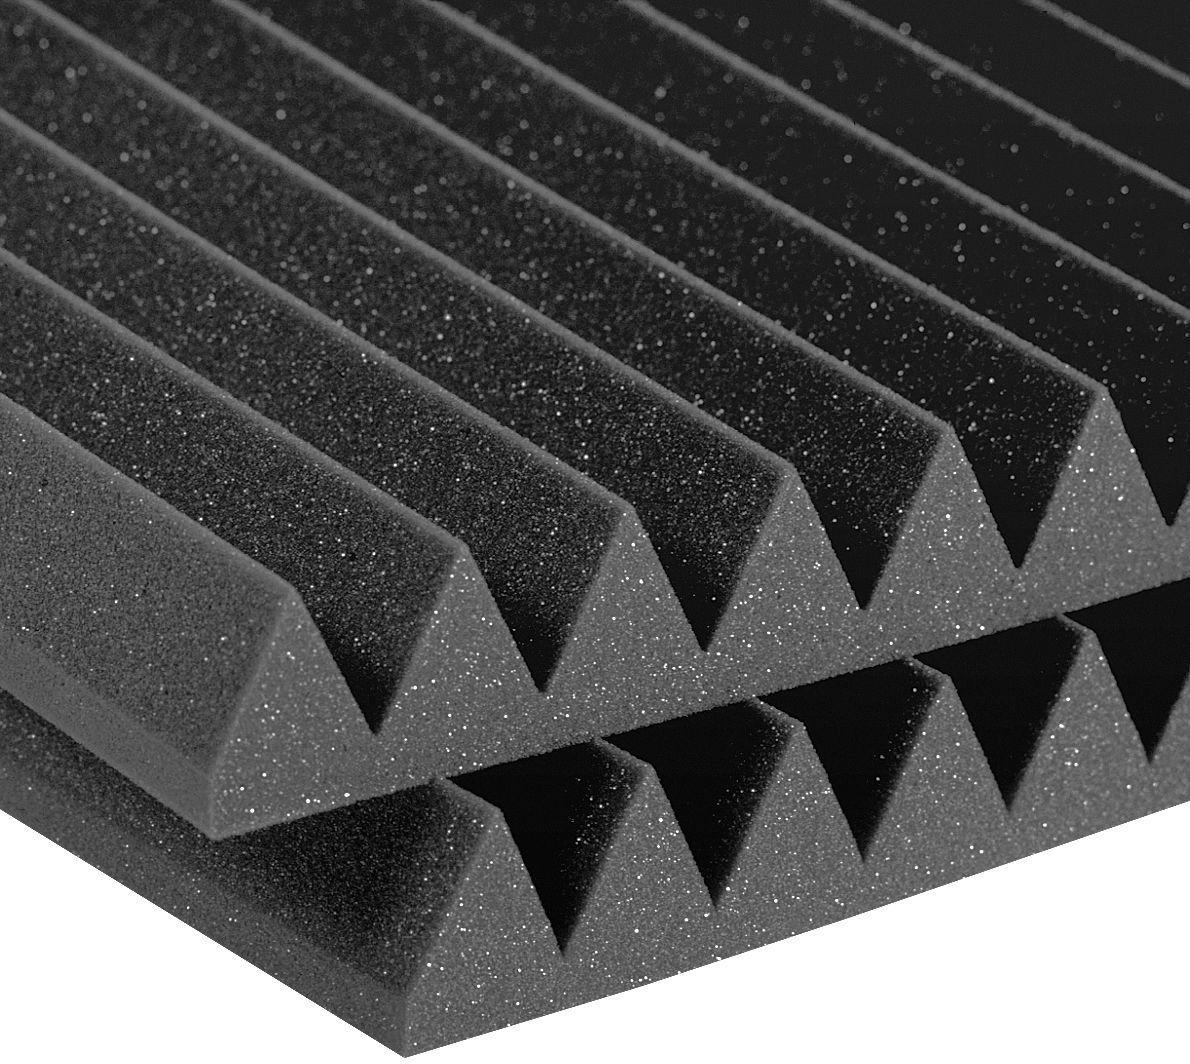 Auralax Studiofoam Wedge Panels, 2-Inch by 24-Inch by 24-Inch, Pack of 2, Charcoal